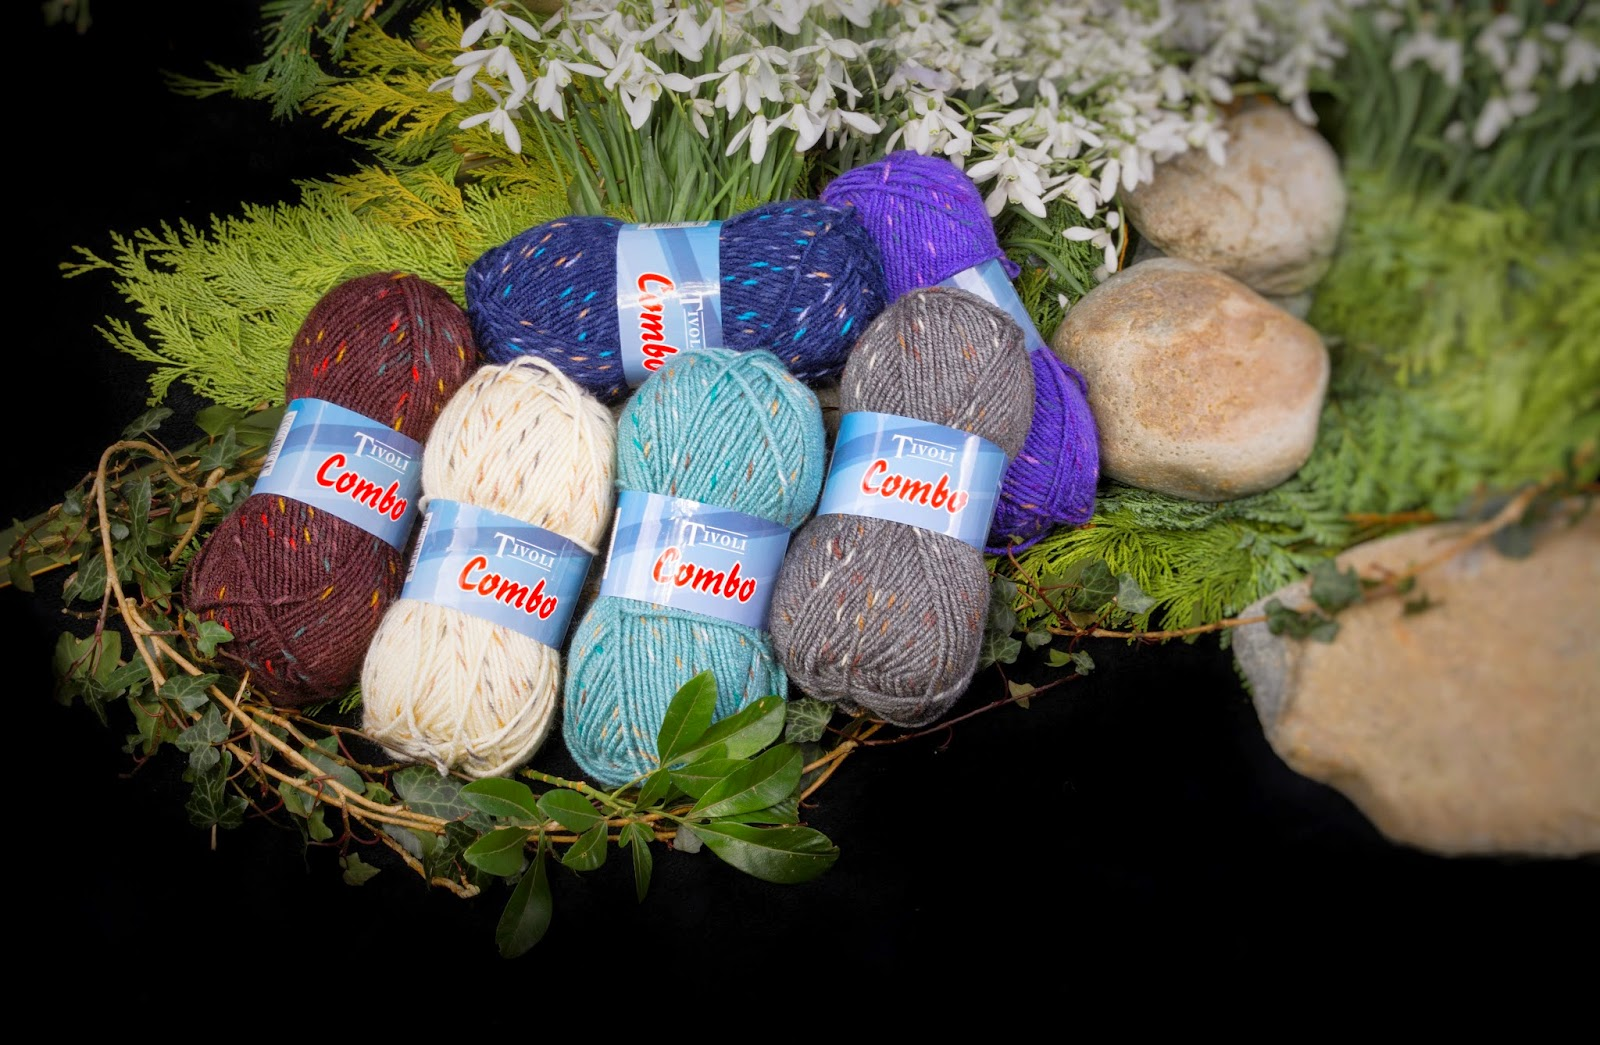 Tivoli Combo Knitting Yarn